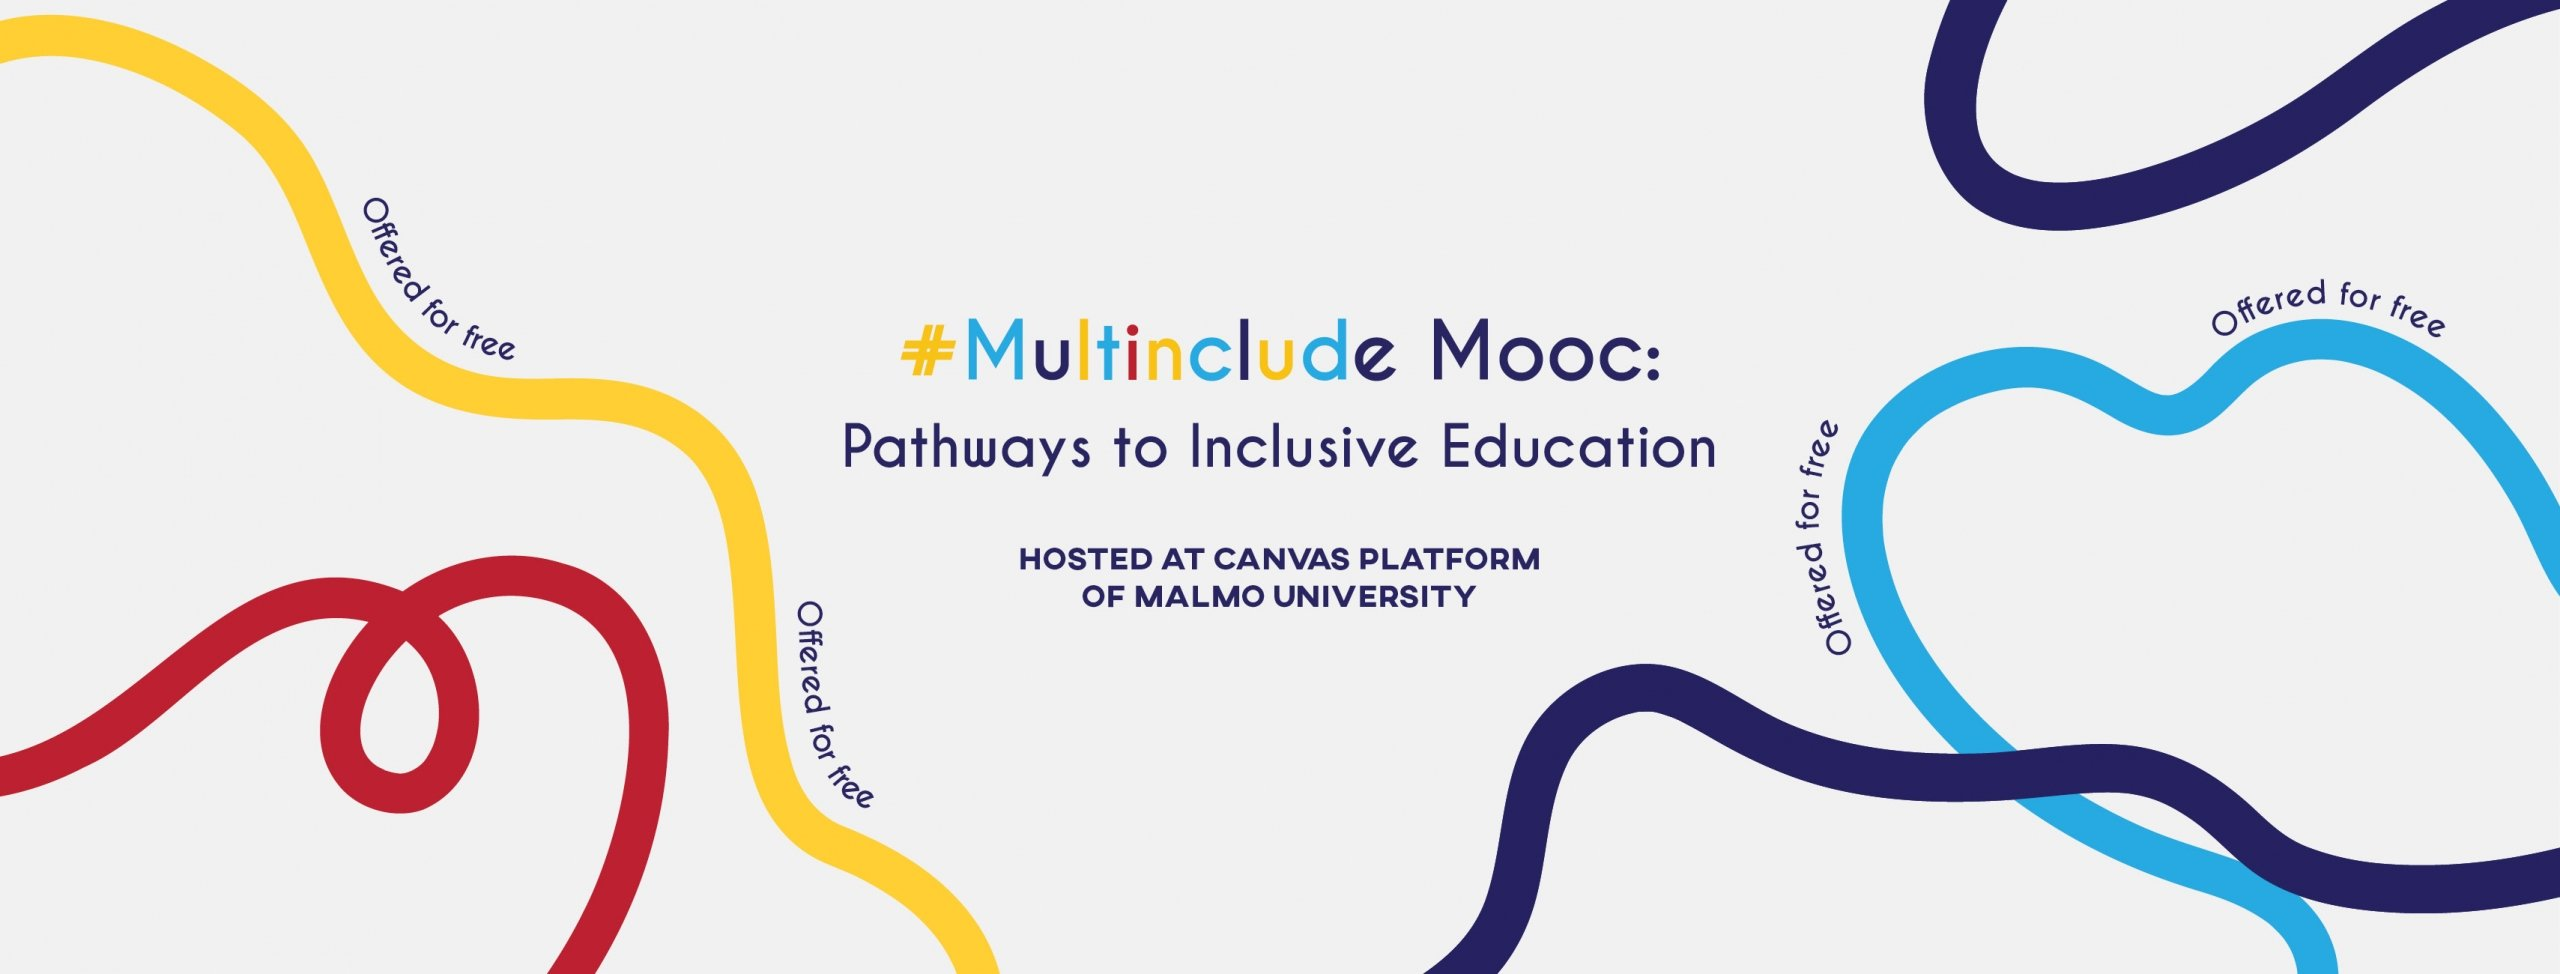 MOOC Pathway to inclusive Education